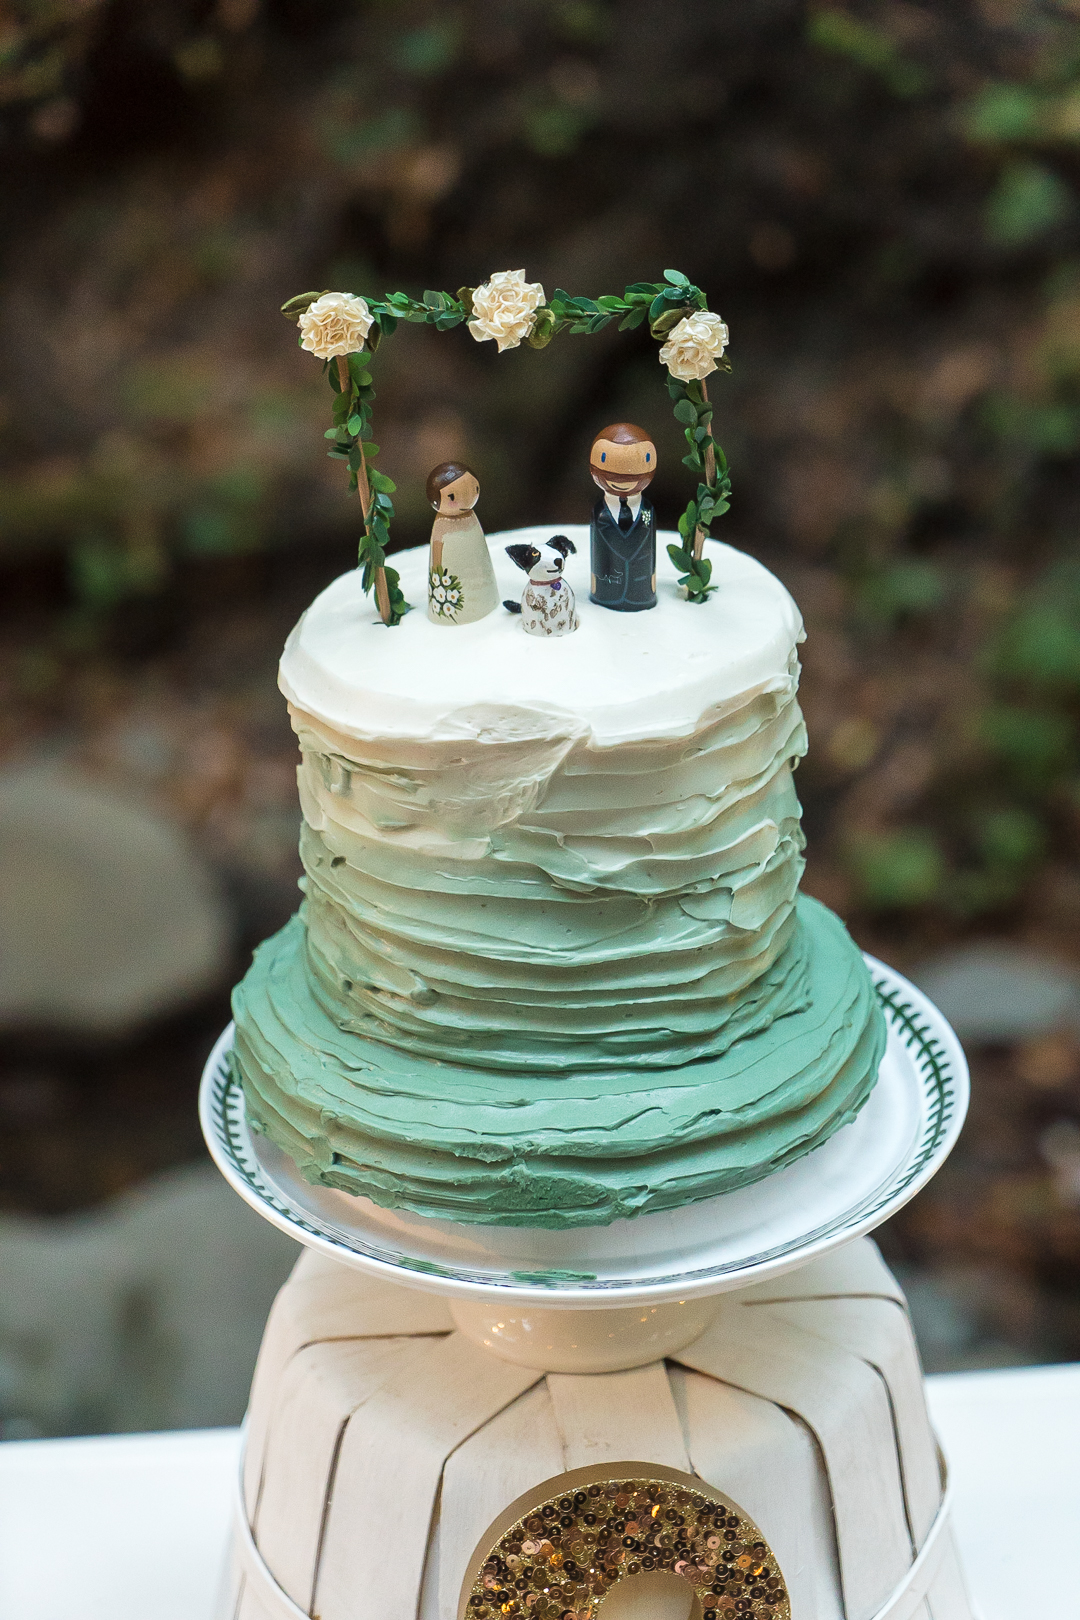 The bride and groom loved their wedding cake,